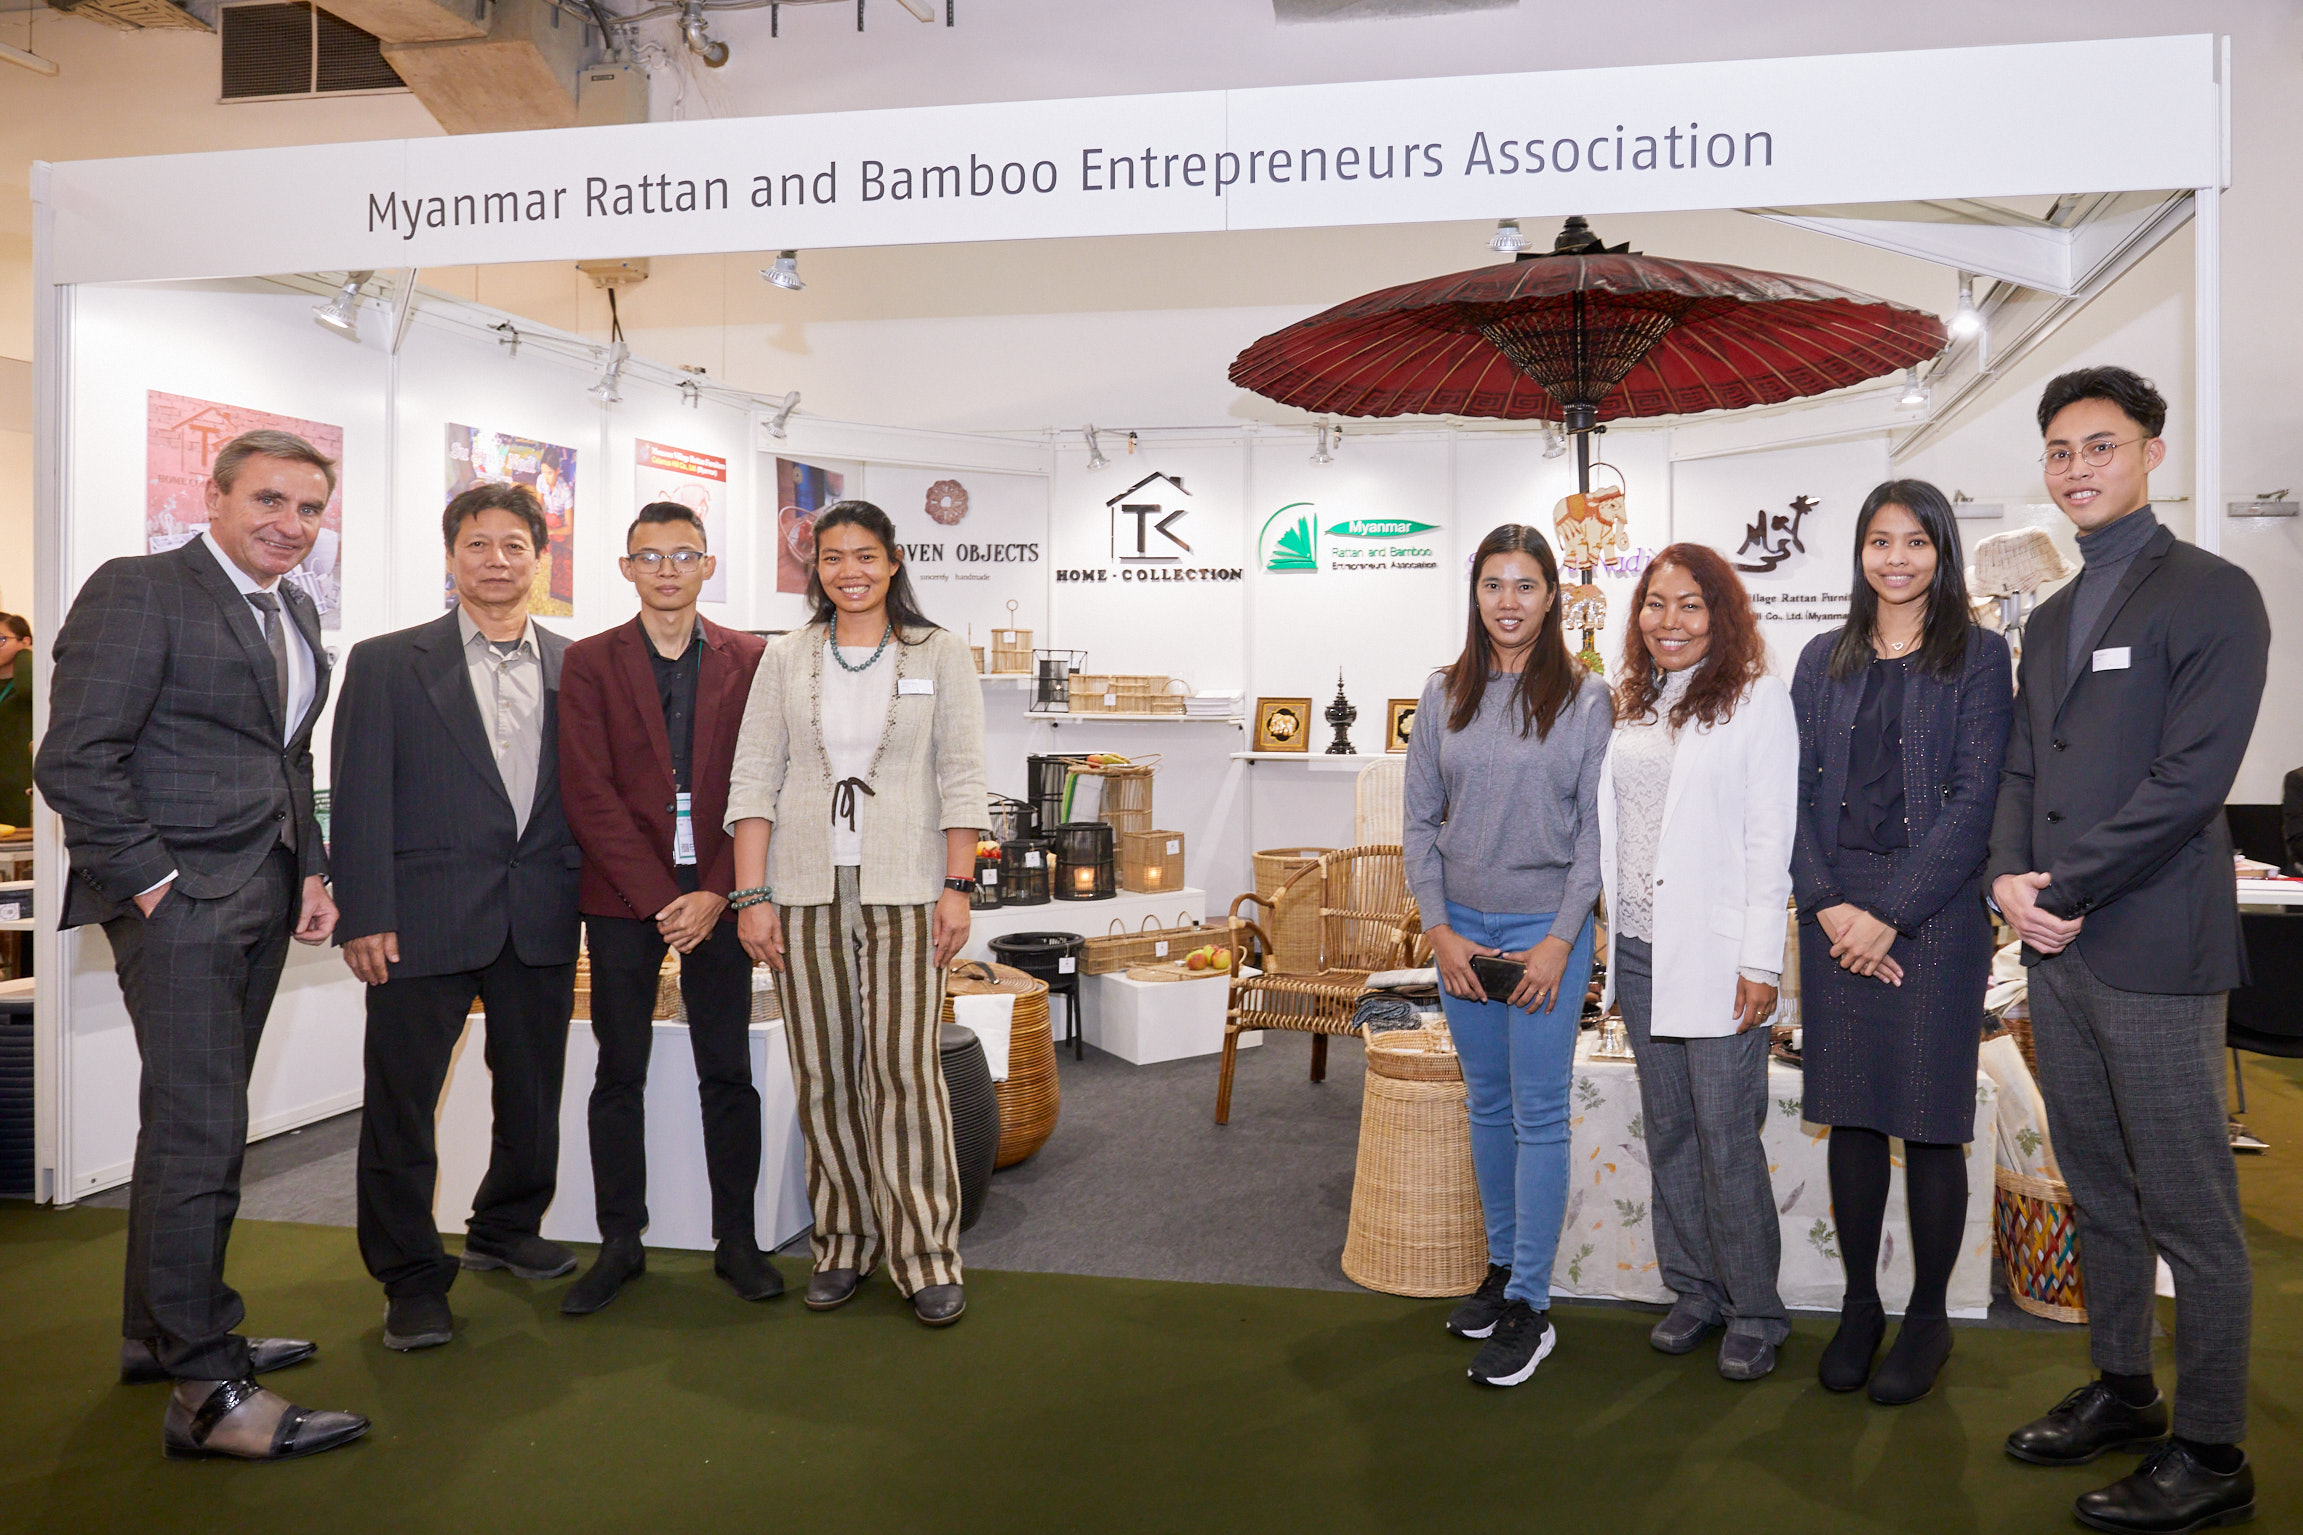 Myanmar Rattan and Bamboo Entrepreneurs Association (MRBEA)